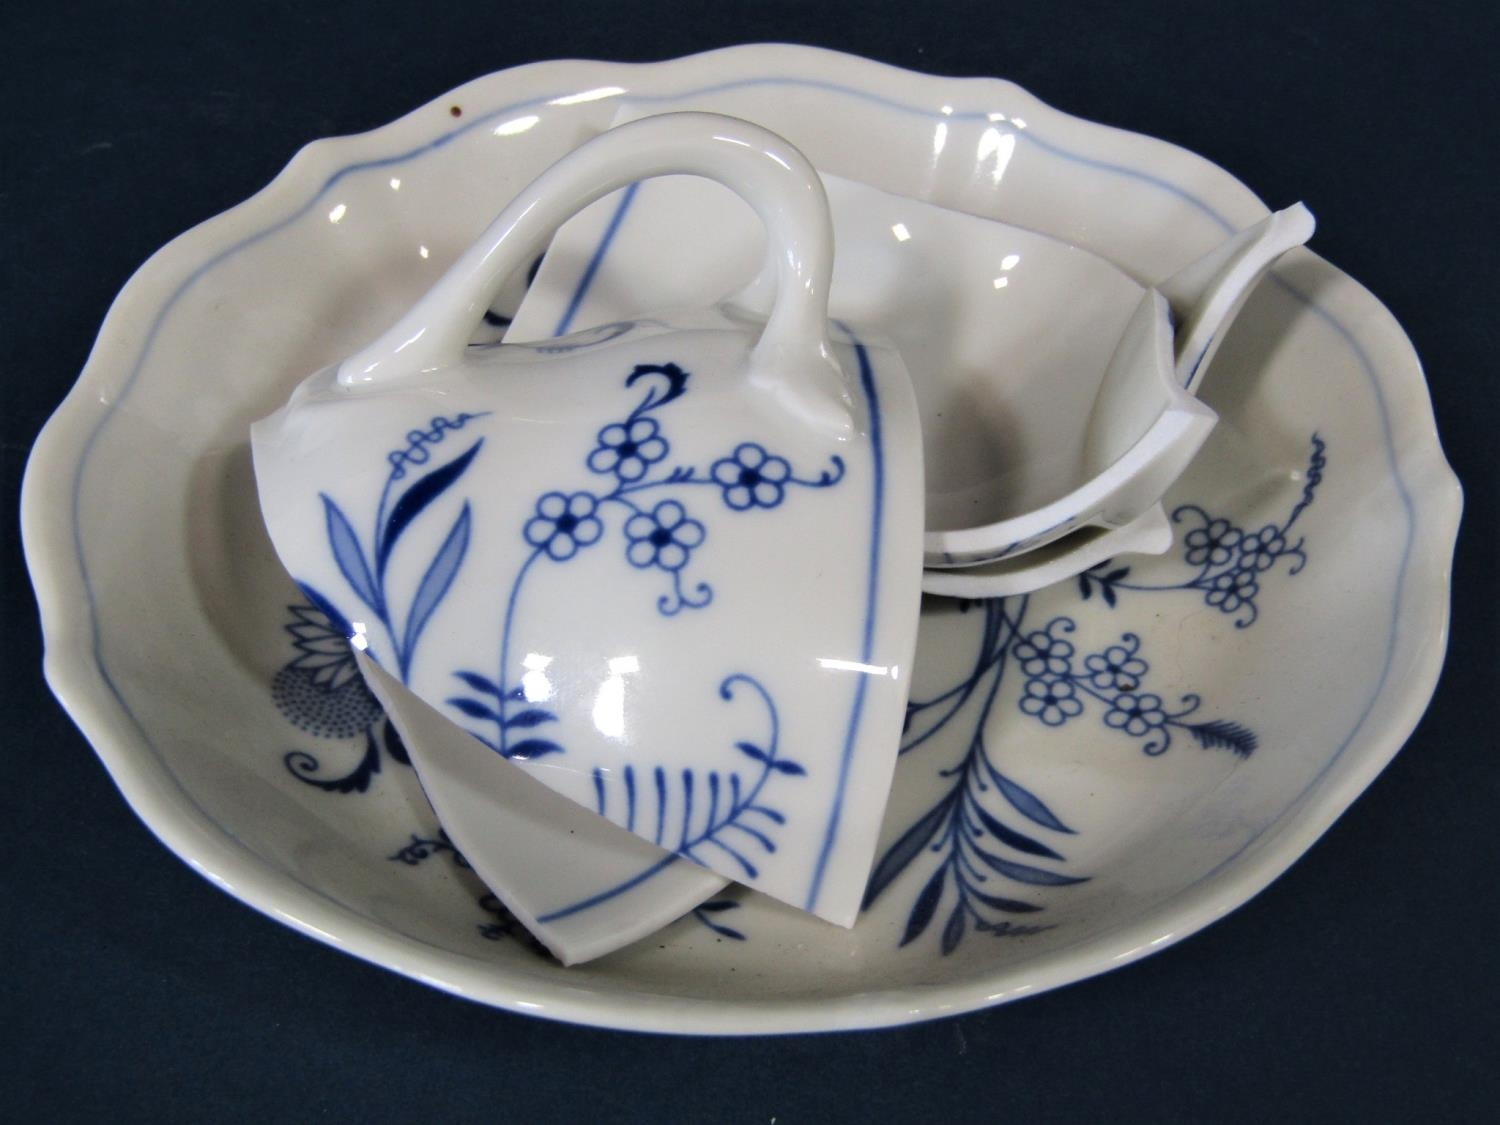 A quantity of German blue and white printed wares with stylised floral detail by Hutschenreuther, - Bild 3 aus 3